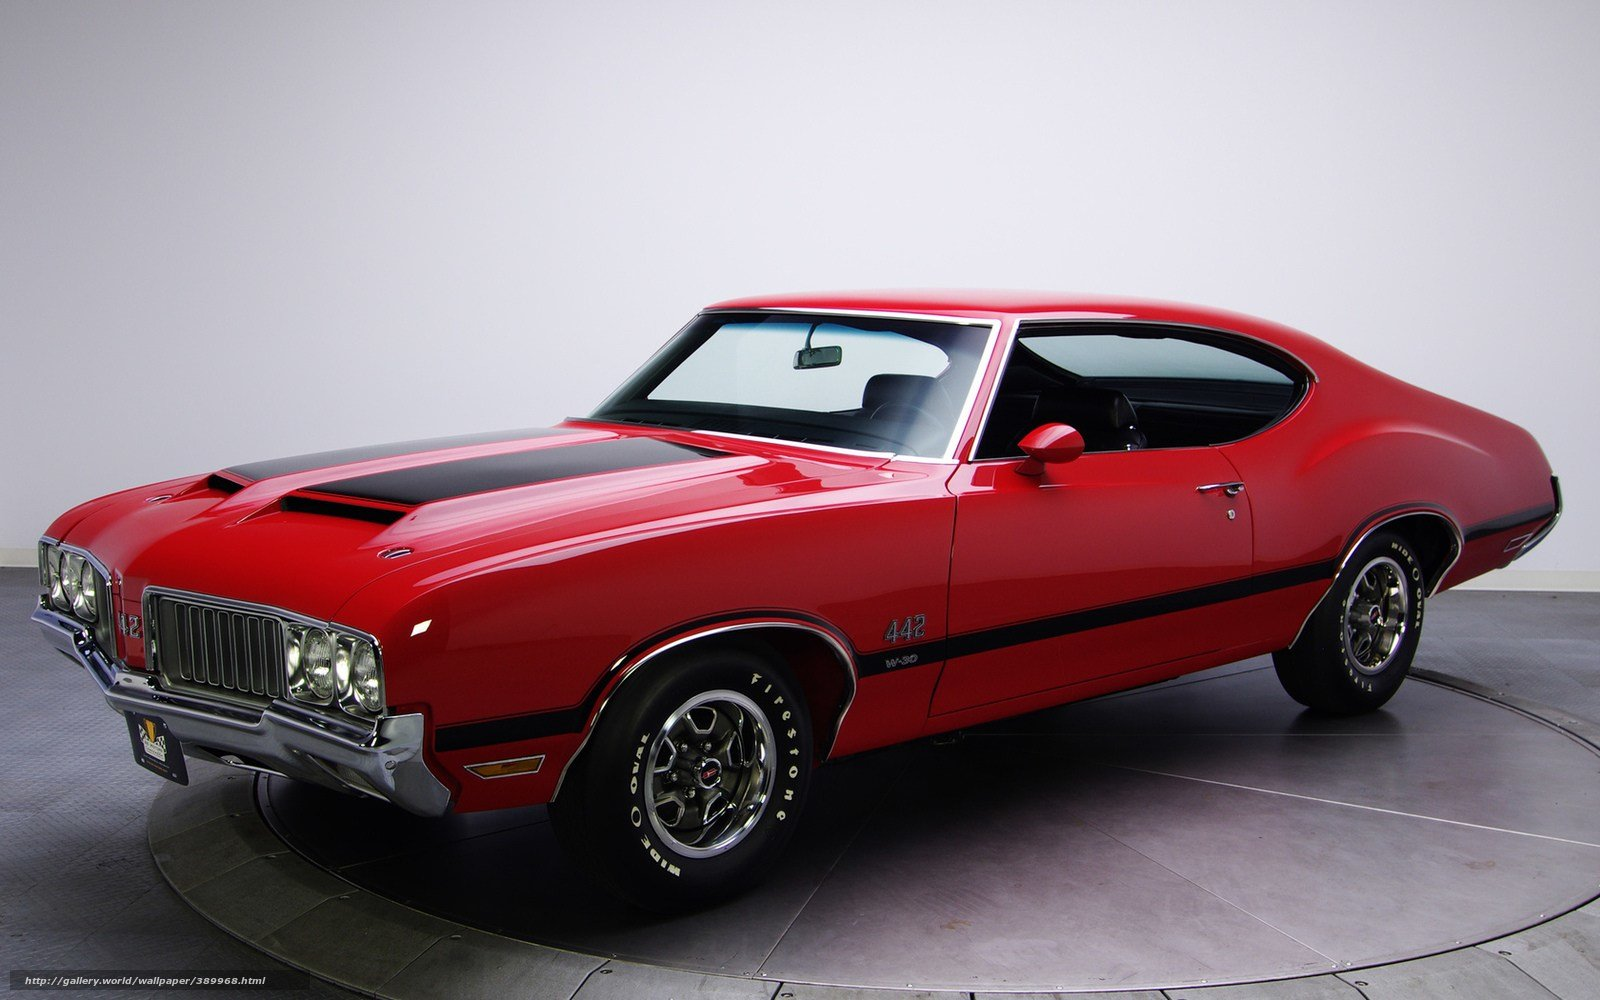 Latest 49 Free Muscle Car Wallpaper Screensavers On Free Download